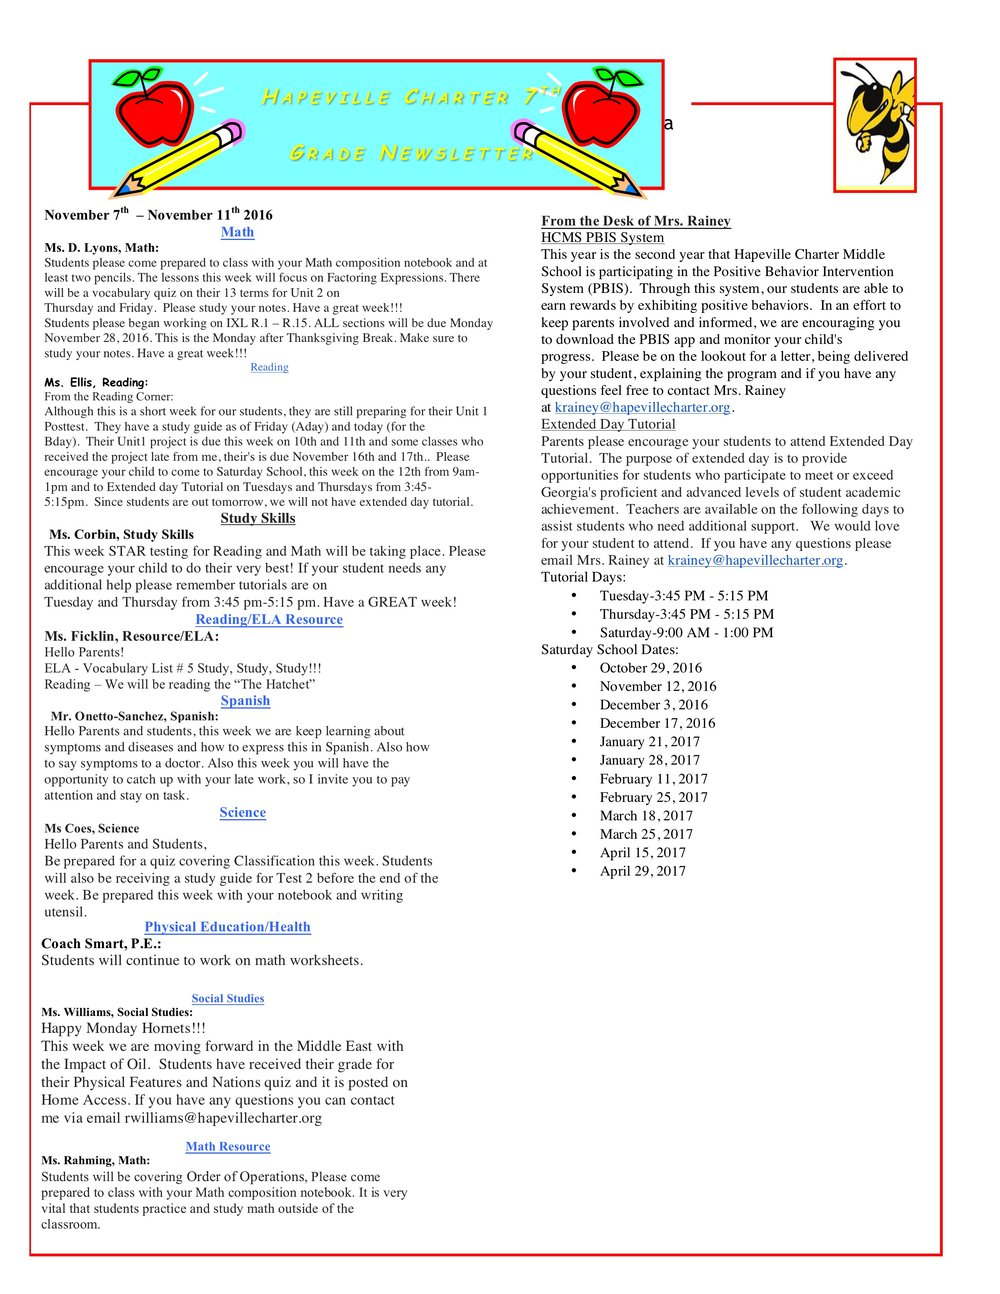 Newsletter Image7th Grade Newsletter 11-7-2016 .jpeg